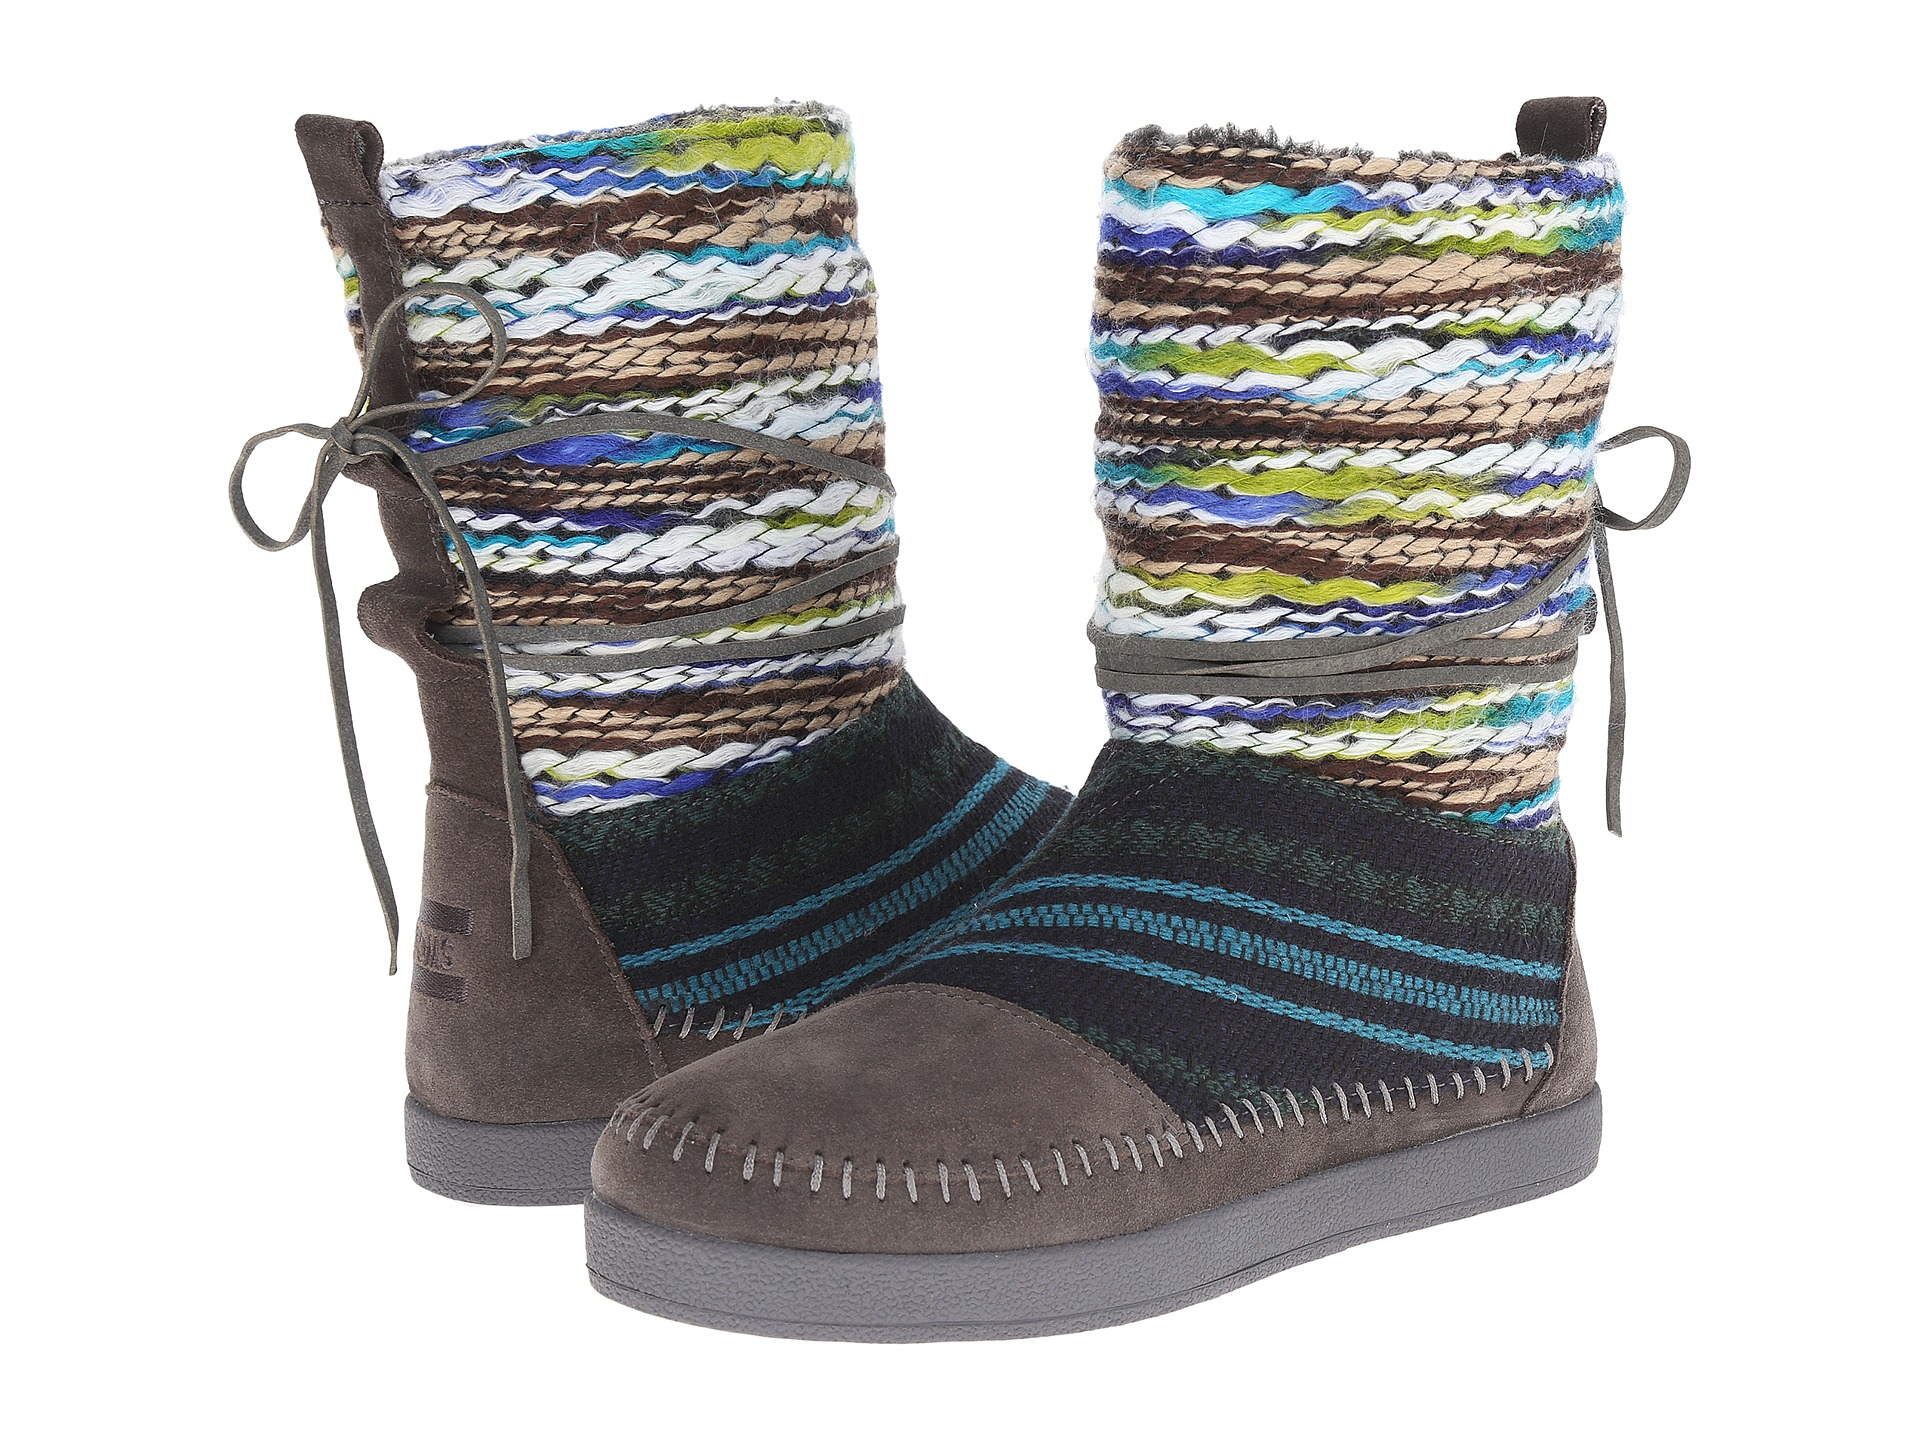 TOMS Nepal Boot Forged Iron Grey Suede Textile Mix - Zappos.com Free Shipping BOTH Ways